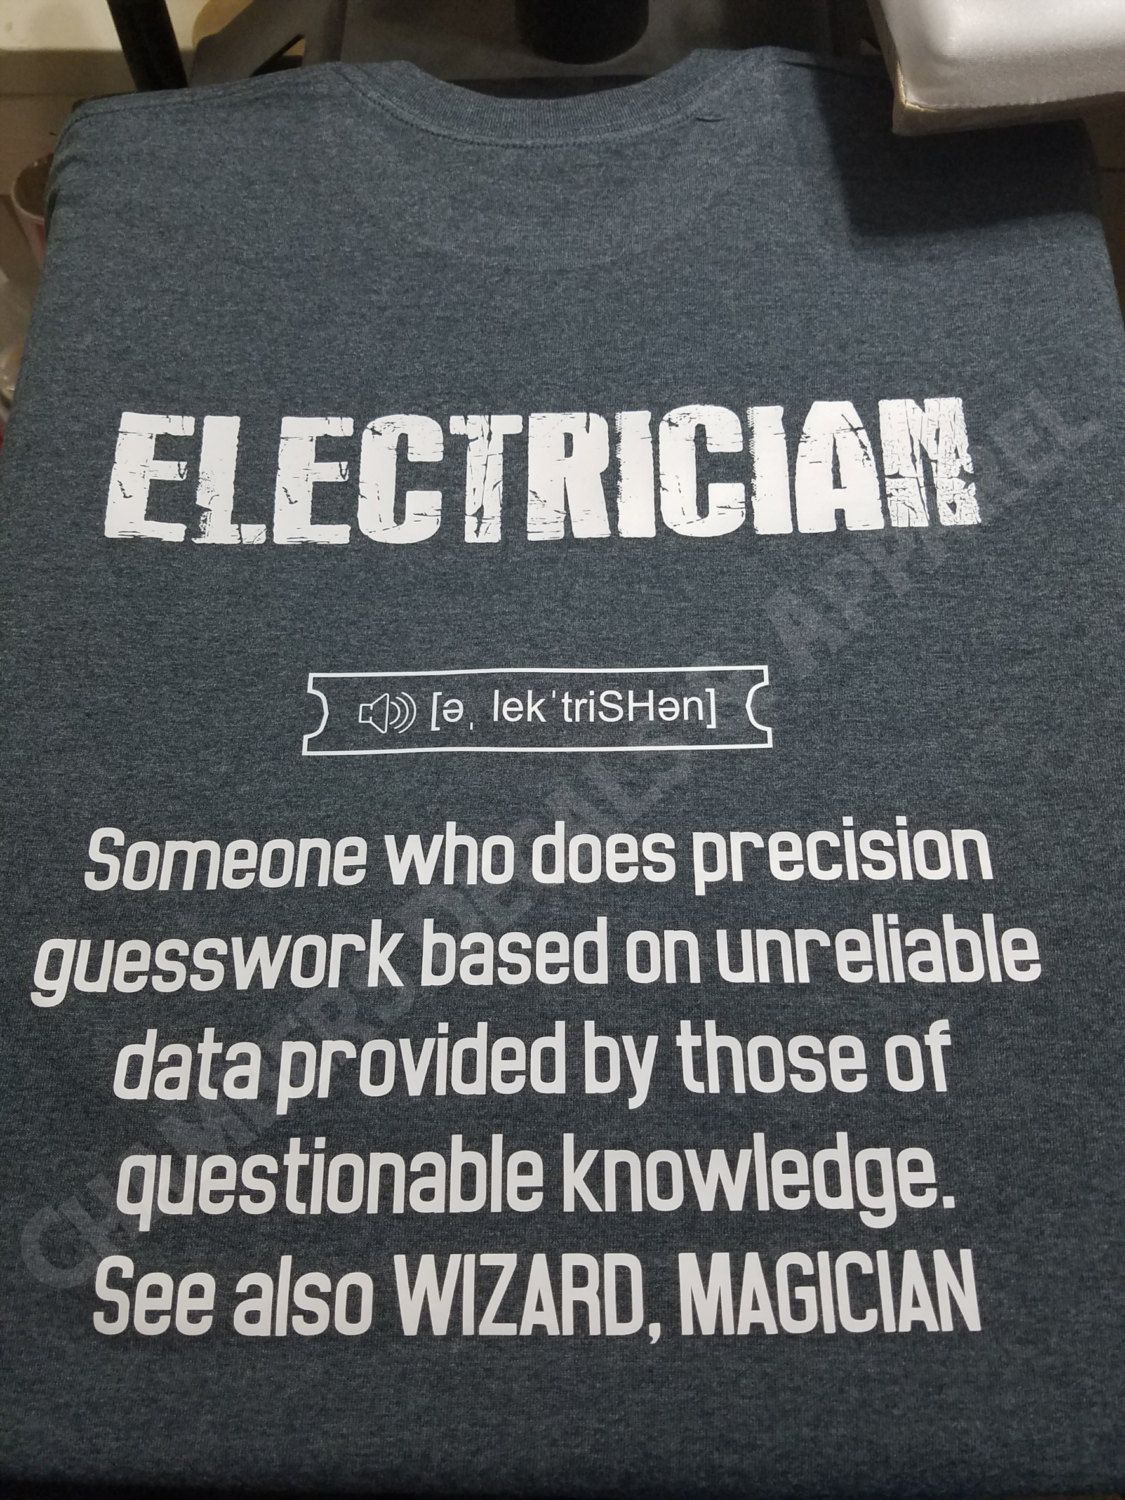 Electrician Quotes Would Make A Great Christmas Gift For An Electrician With A Sense Of